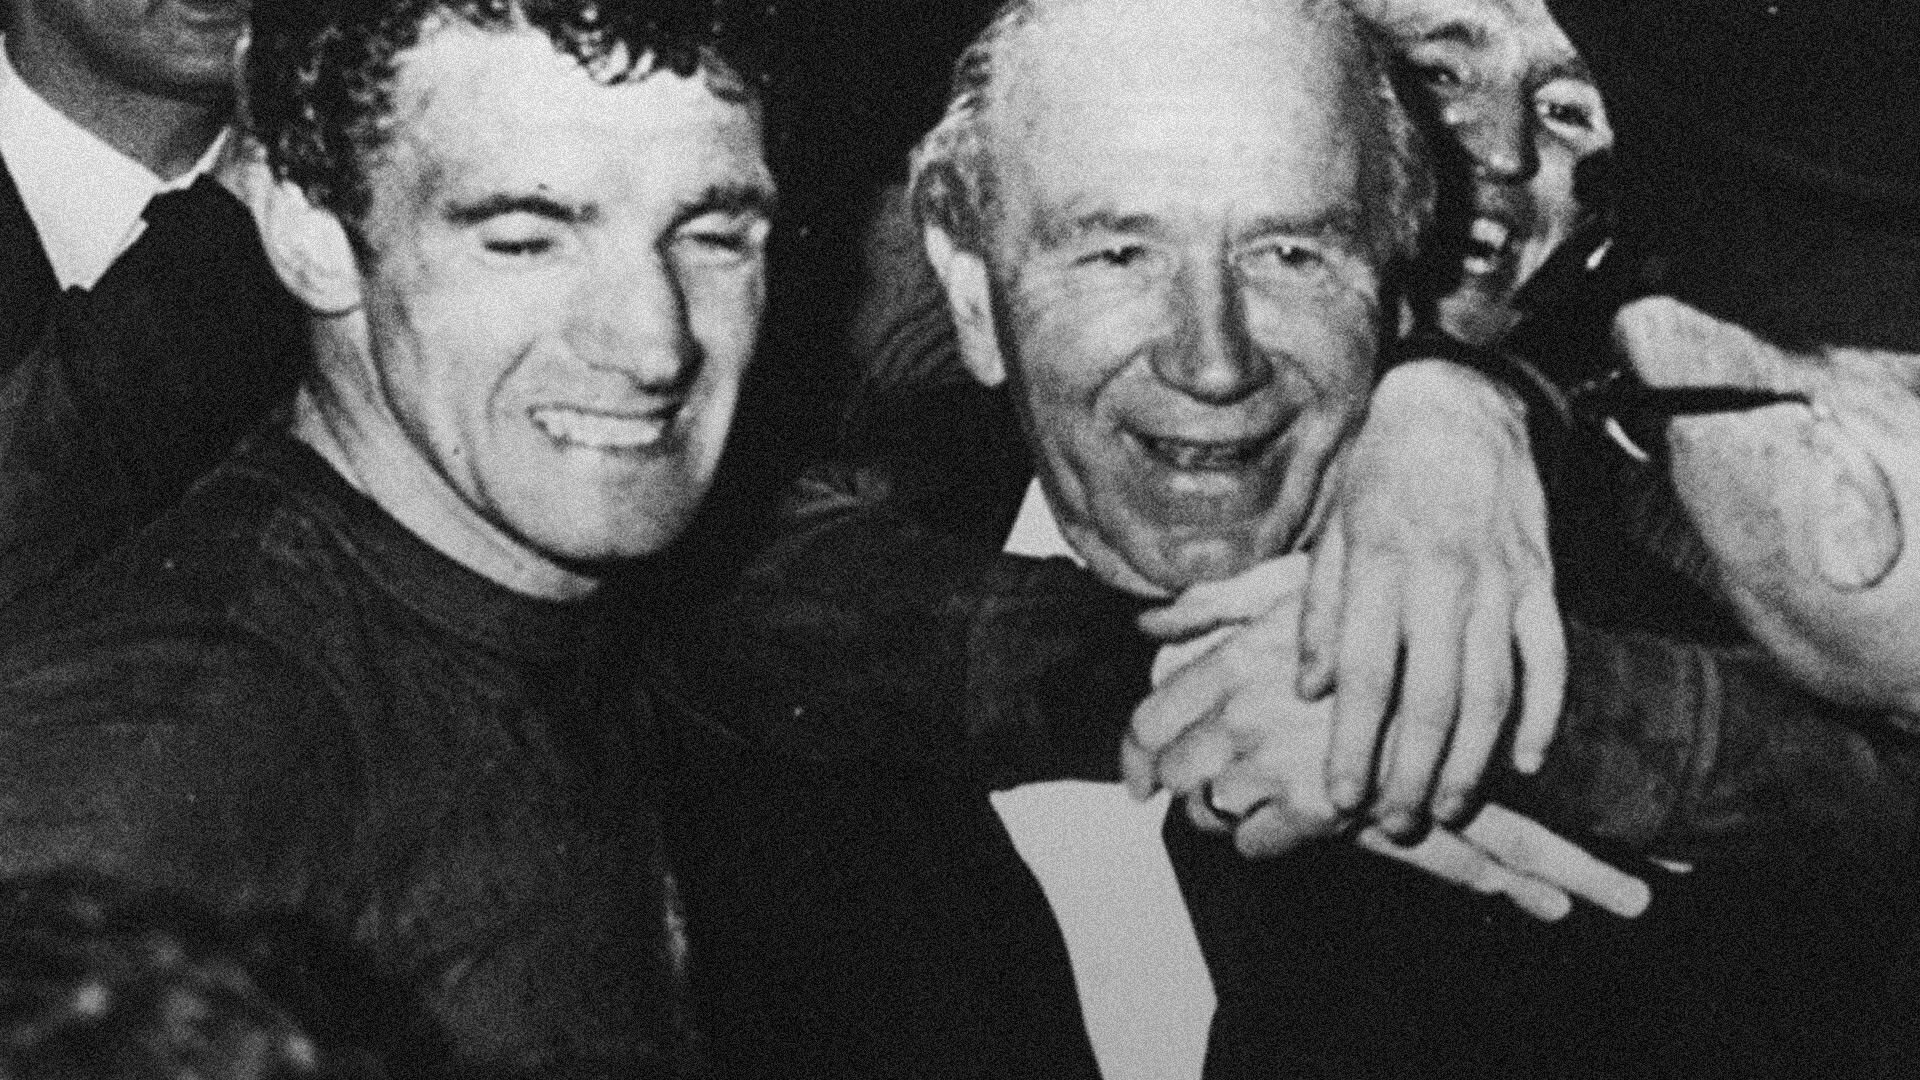 Matt Busby is hugged by Bill Foulkes and Pat Crerand after United's 1968 European Cup win